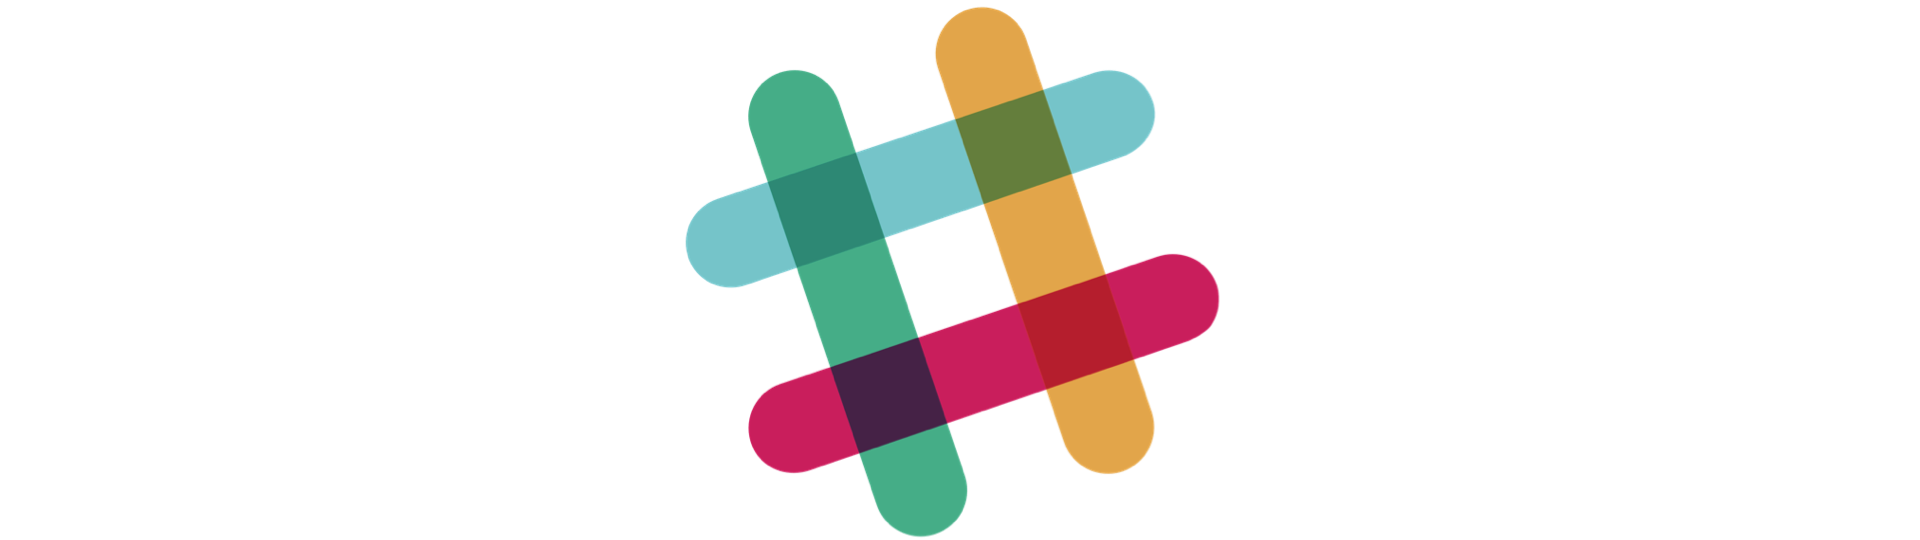 How to Debug an Ionic 3 application with Slack - Appseed IO